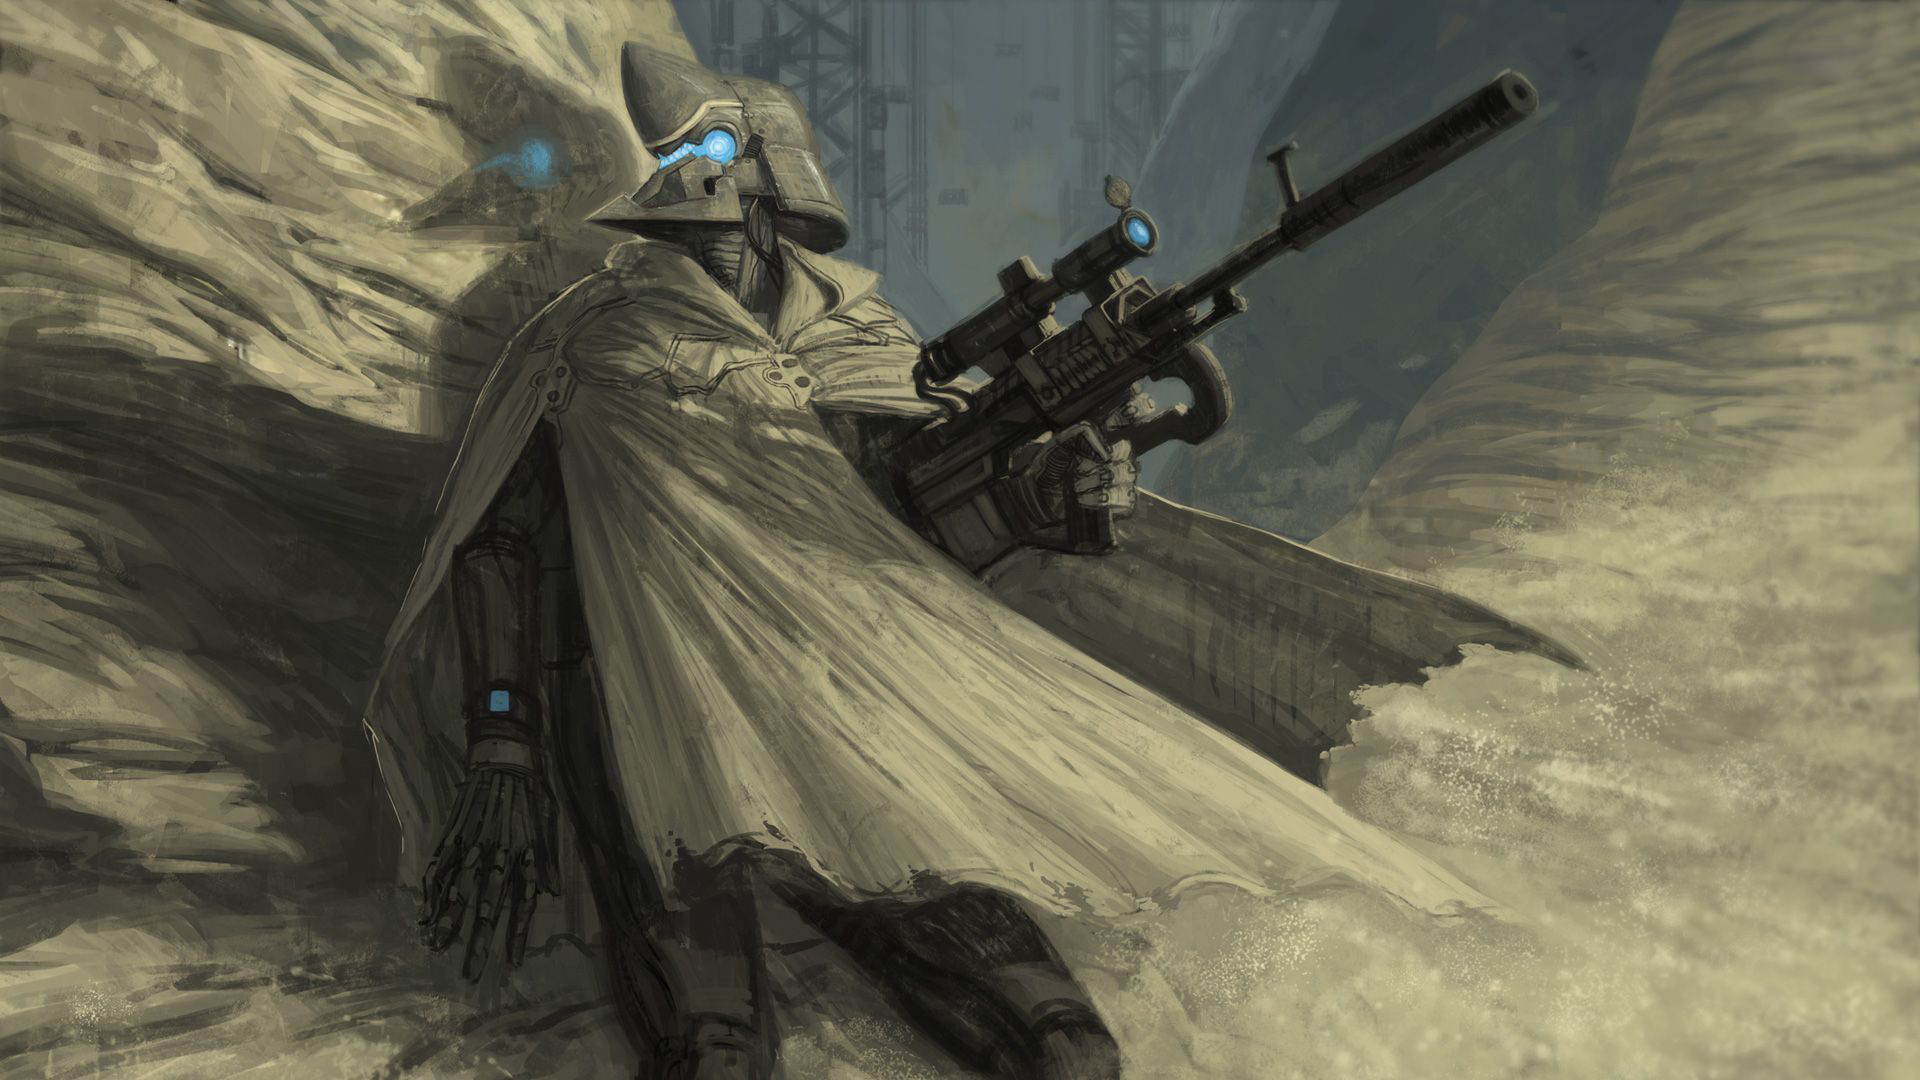 Sniper Full HD Wallpaper And Background Image